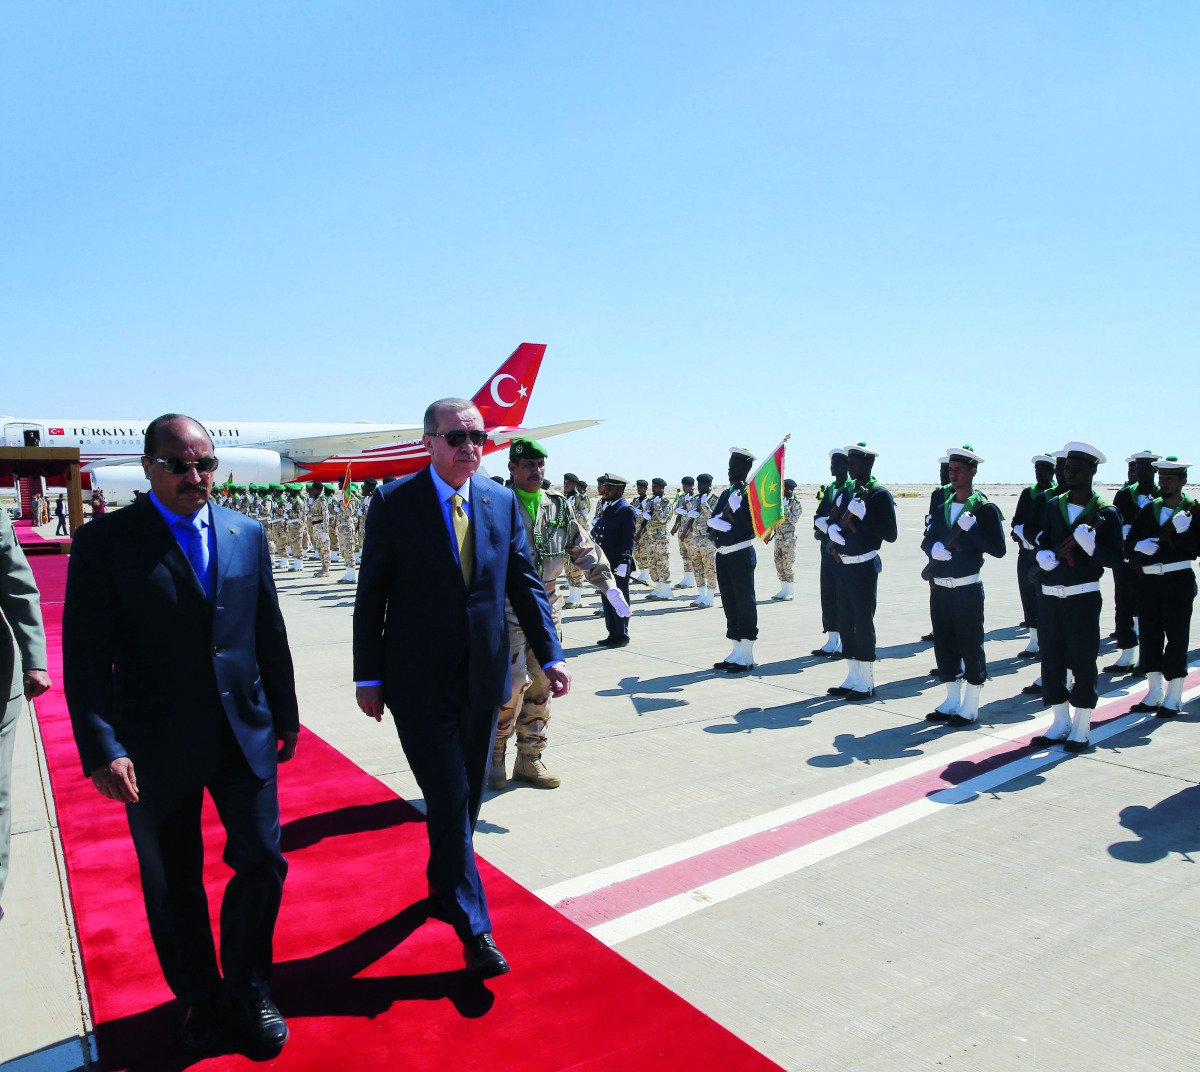 President Erdogan of Turkey walks on a red carpet upon arrival in Mauritania for a state visit.